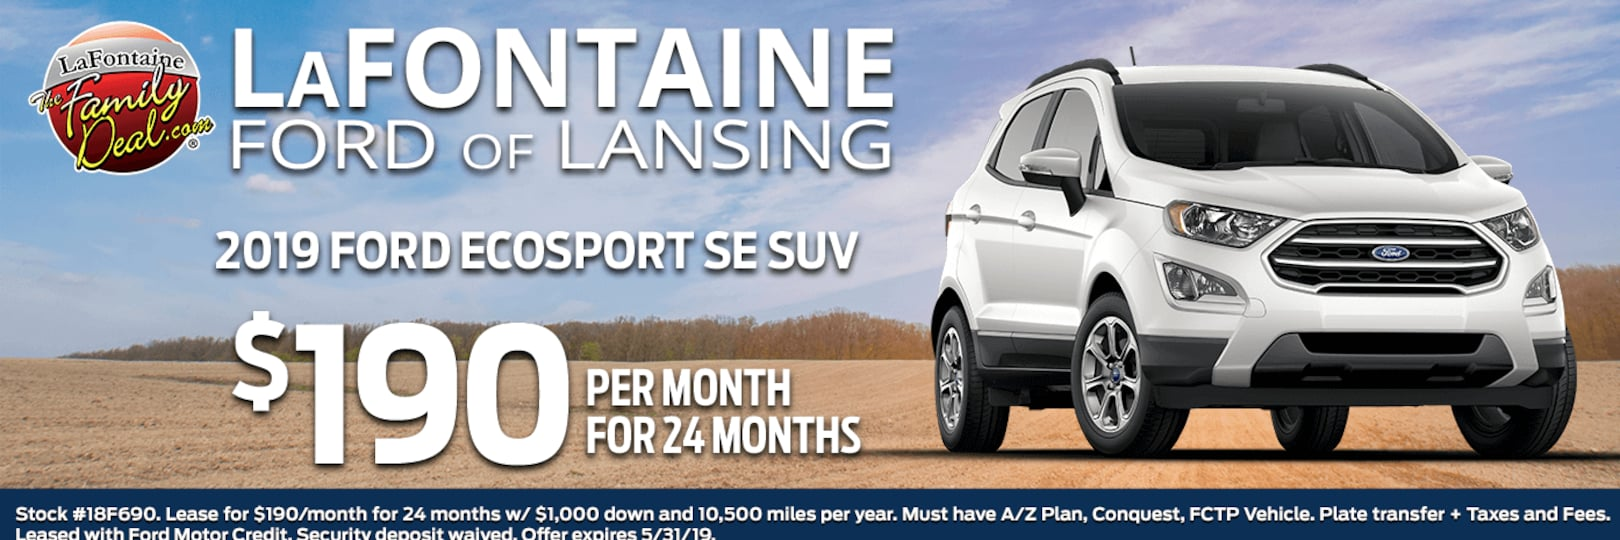 Lafontaine Ford Lansing >> LaFontaine Ford of Lansing | Ford Dealership in Lansing MI